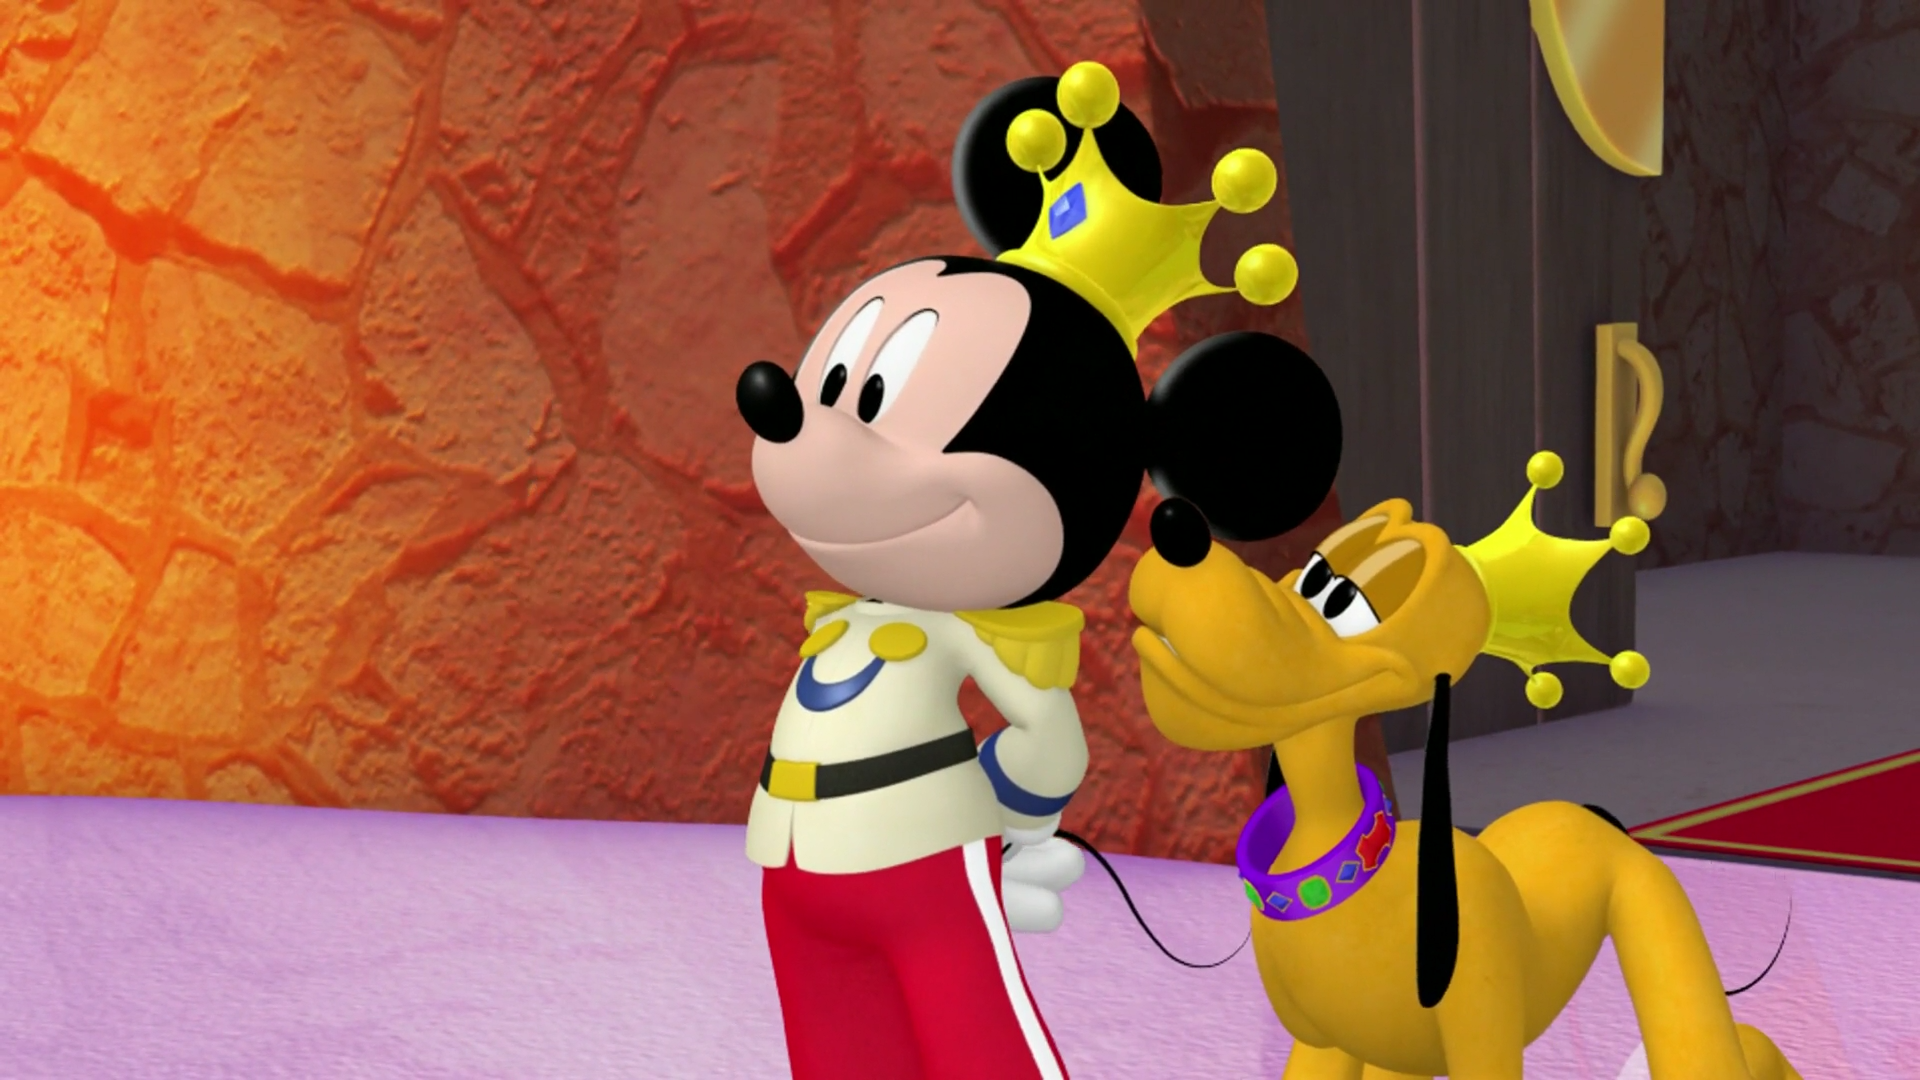 Uncategorized Mickey And Pluto image prince mickey and pluto minnierella png disney png